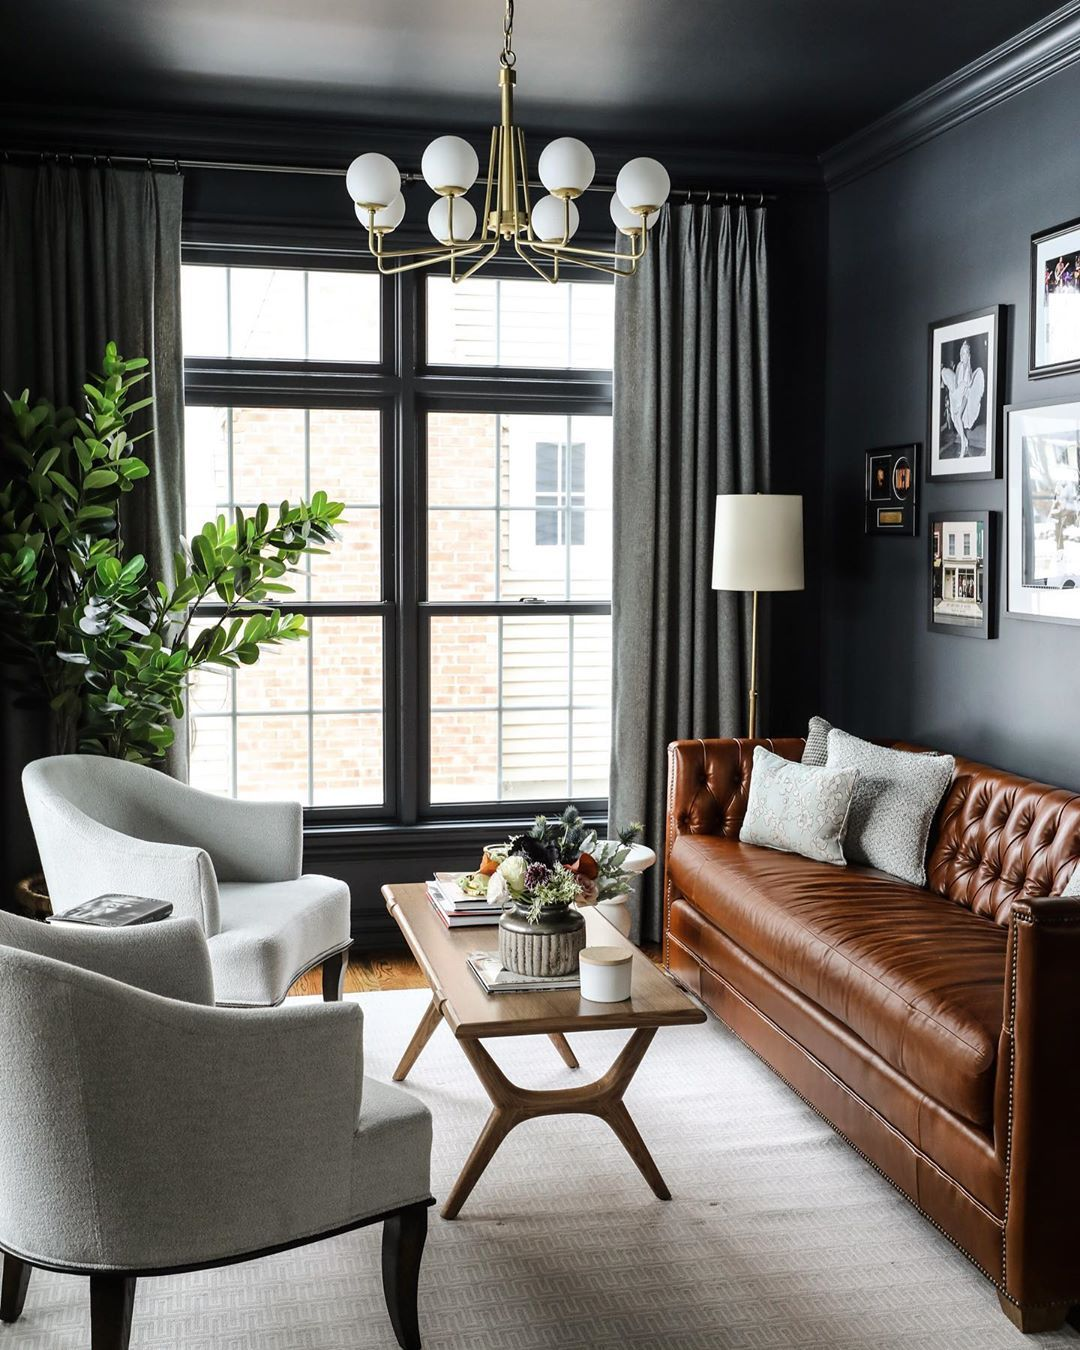 Transitioning Into The Weekend Is Always A Little Easier In A Good Cocktail Room We Have A New Blog Post Lounge Room Design Home Room Design Bar Lounge Room Living room or lounge